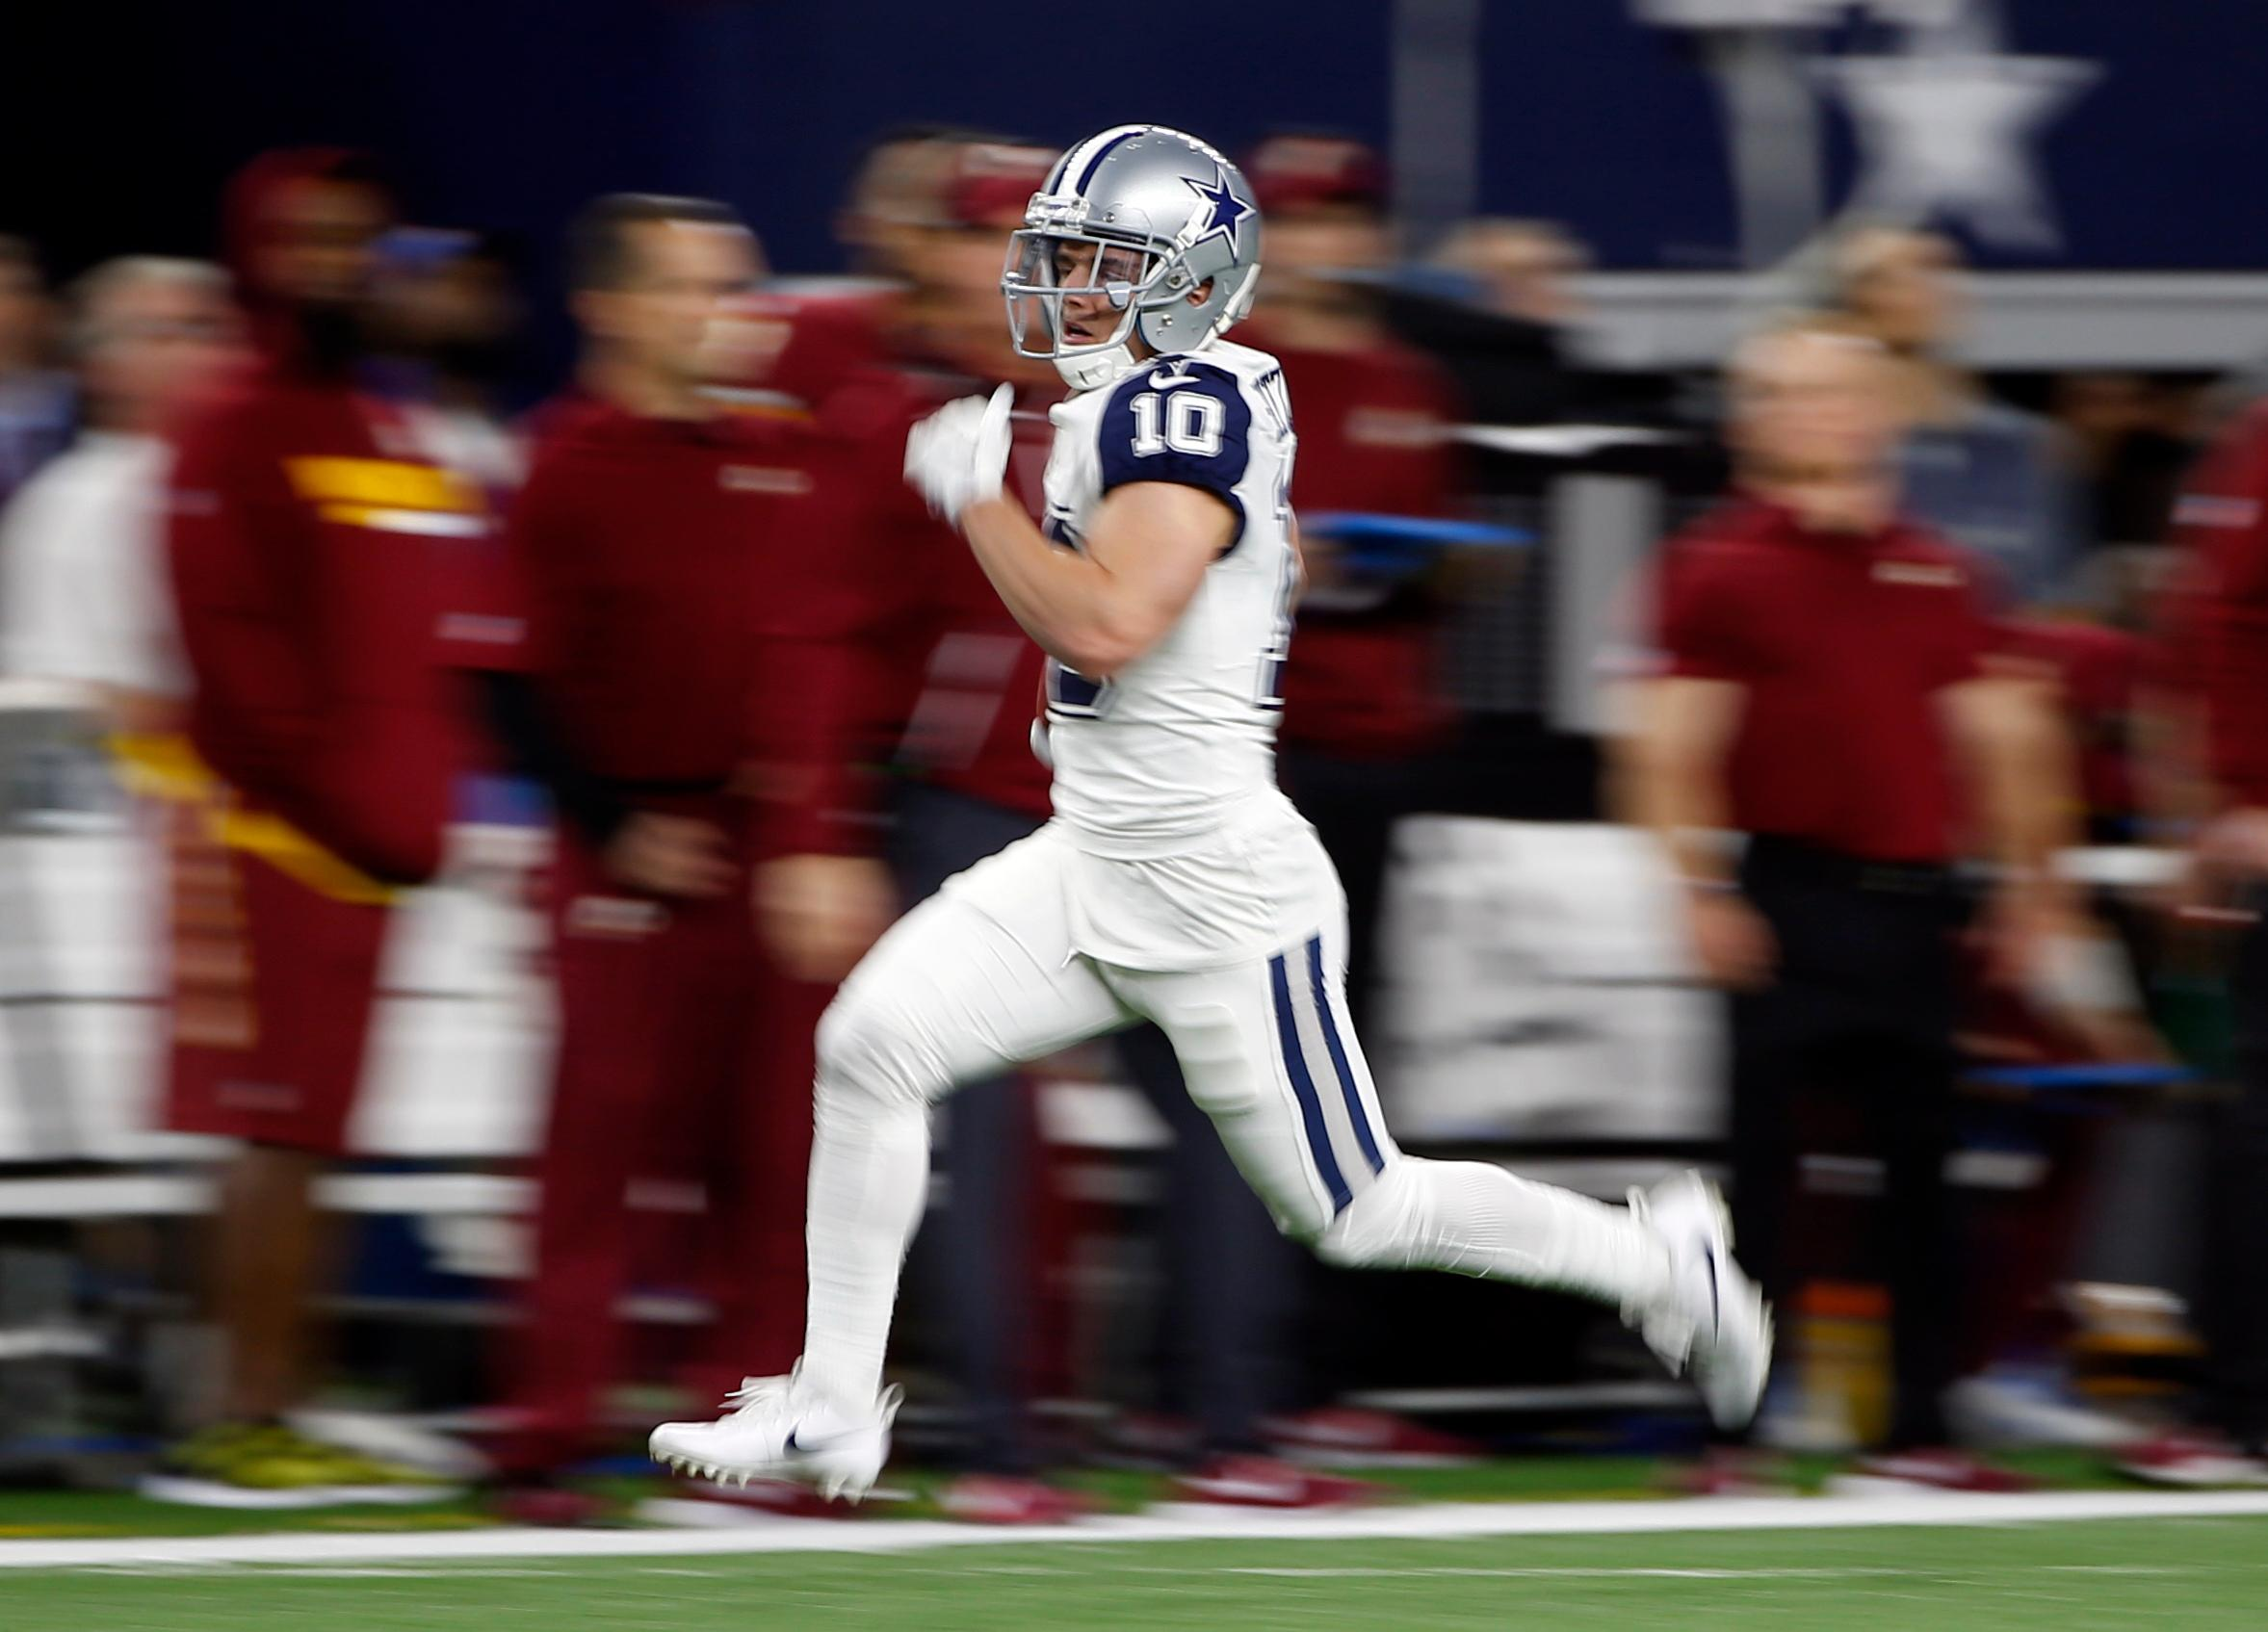 Dallas Cowboys wide receiver Ryan Switzer (10) returns a Washington Redskins punt for a touchdown in the first half of an NFL football game, Thursday, Nov. 30, 2017, in Arlington, Texas. (AP Photo/Ron Jenkins)